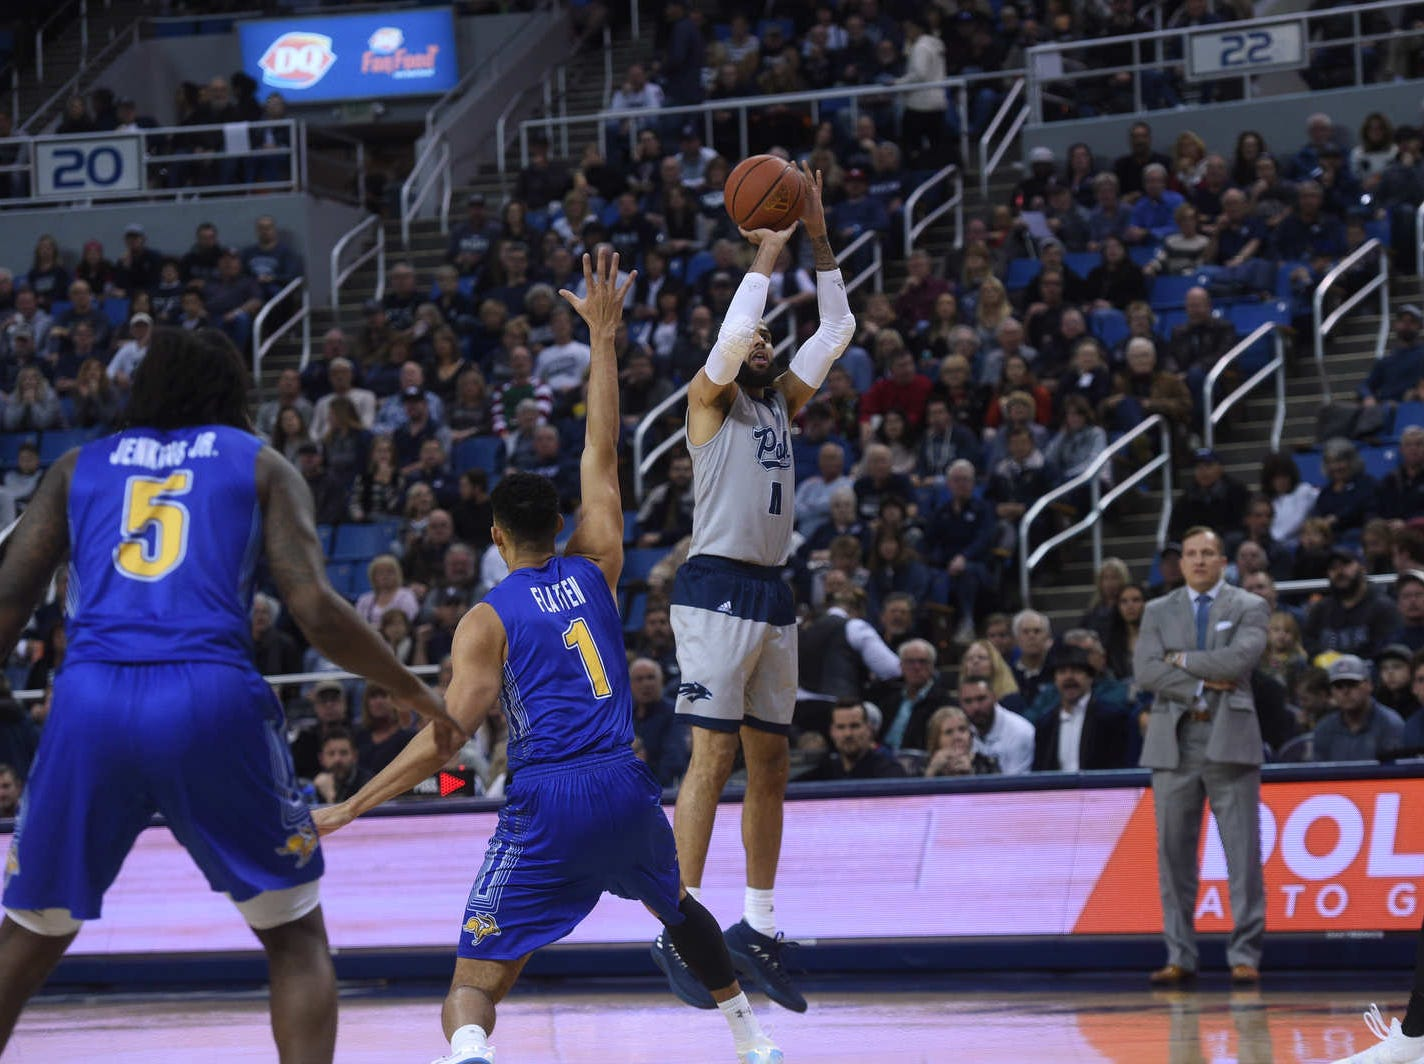 Nevada takes on South Dakota State during their basketball game at Lawlor Events Center in Reno on Dec. 15, 2018.